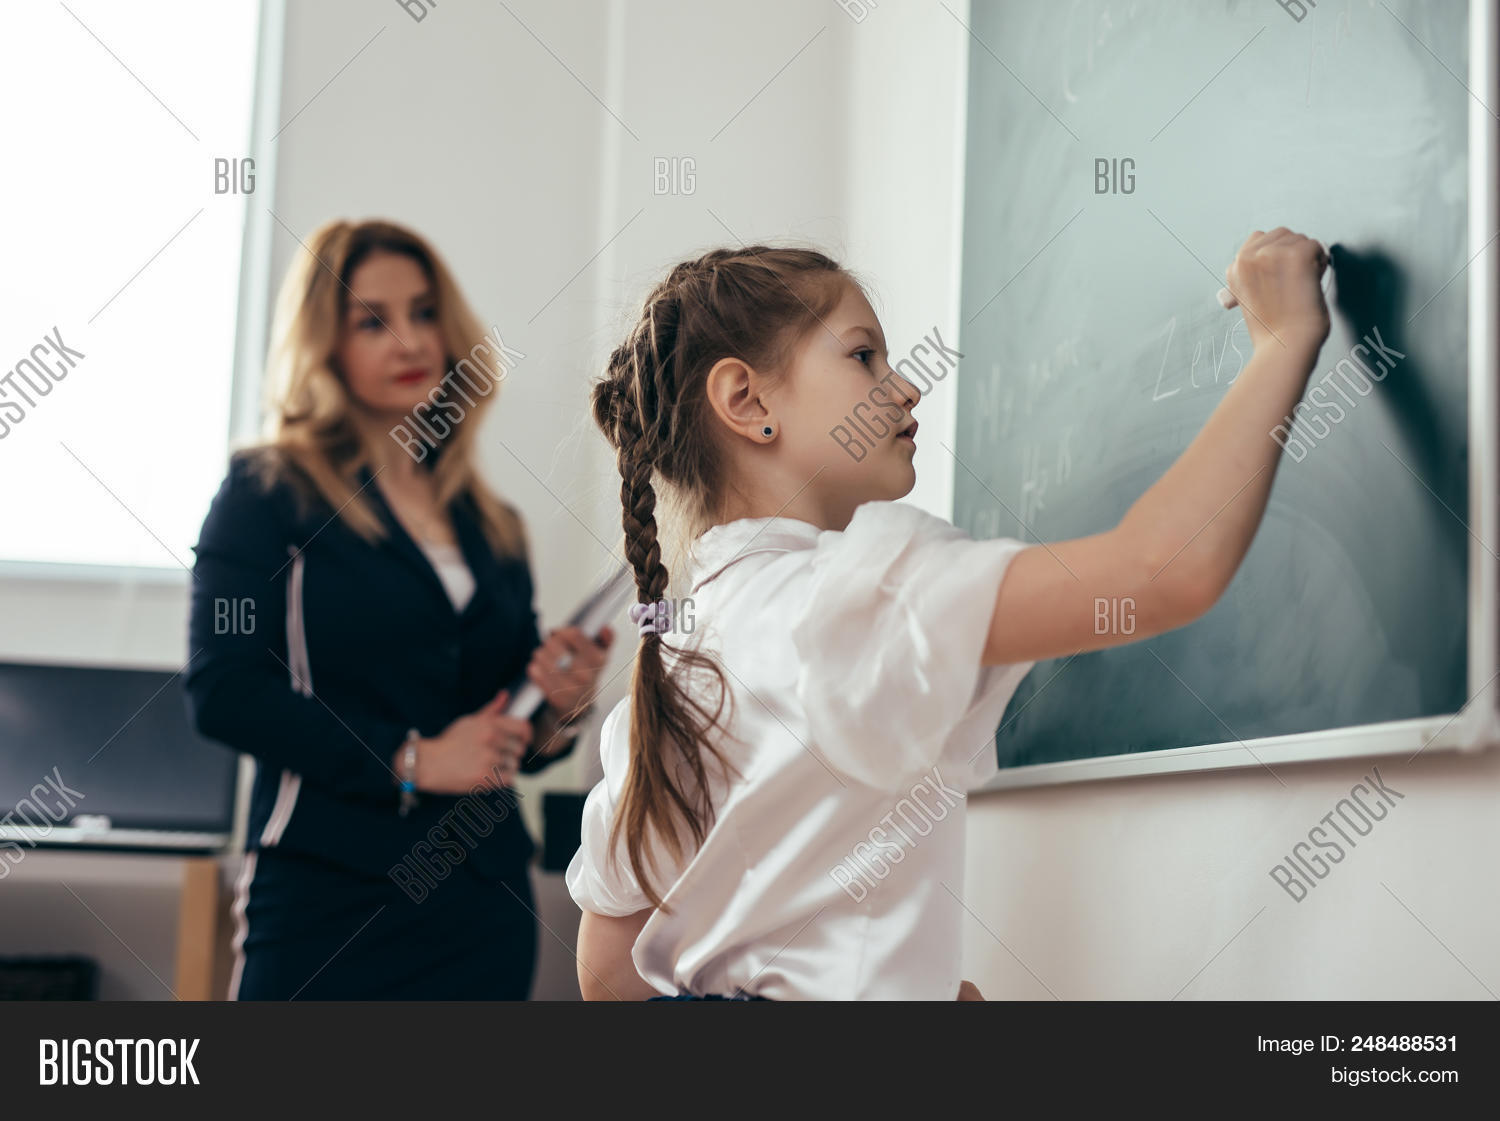 apron,arithmetic,attentive,blackboard,board,caucasian,chalk,chalkboard,cheerful,child,class,classroom,clever,close,education,elementary,first-grader,girl,hand,italian,italianschoolgirl,junior,kid,learn,learning,lesson,little,mathematics,primary,pupil,recollect,room,school,schoolgirl,schooling,smiling,solve,standing,student,study,studying,task,teach,teacher,teaching,tutor,woman,work,writing,young